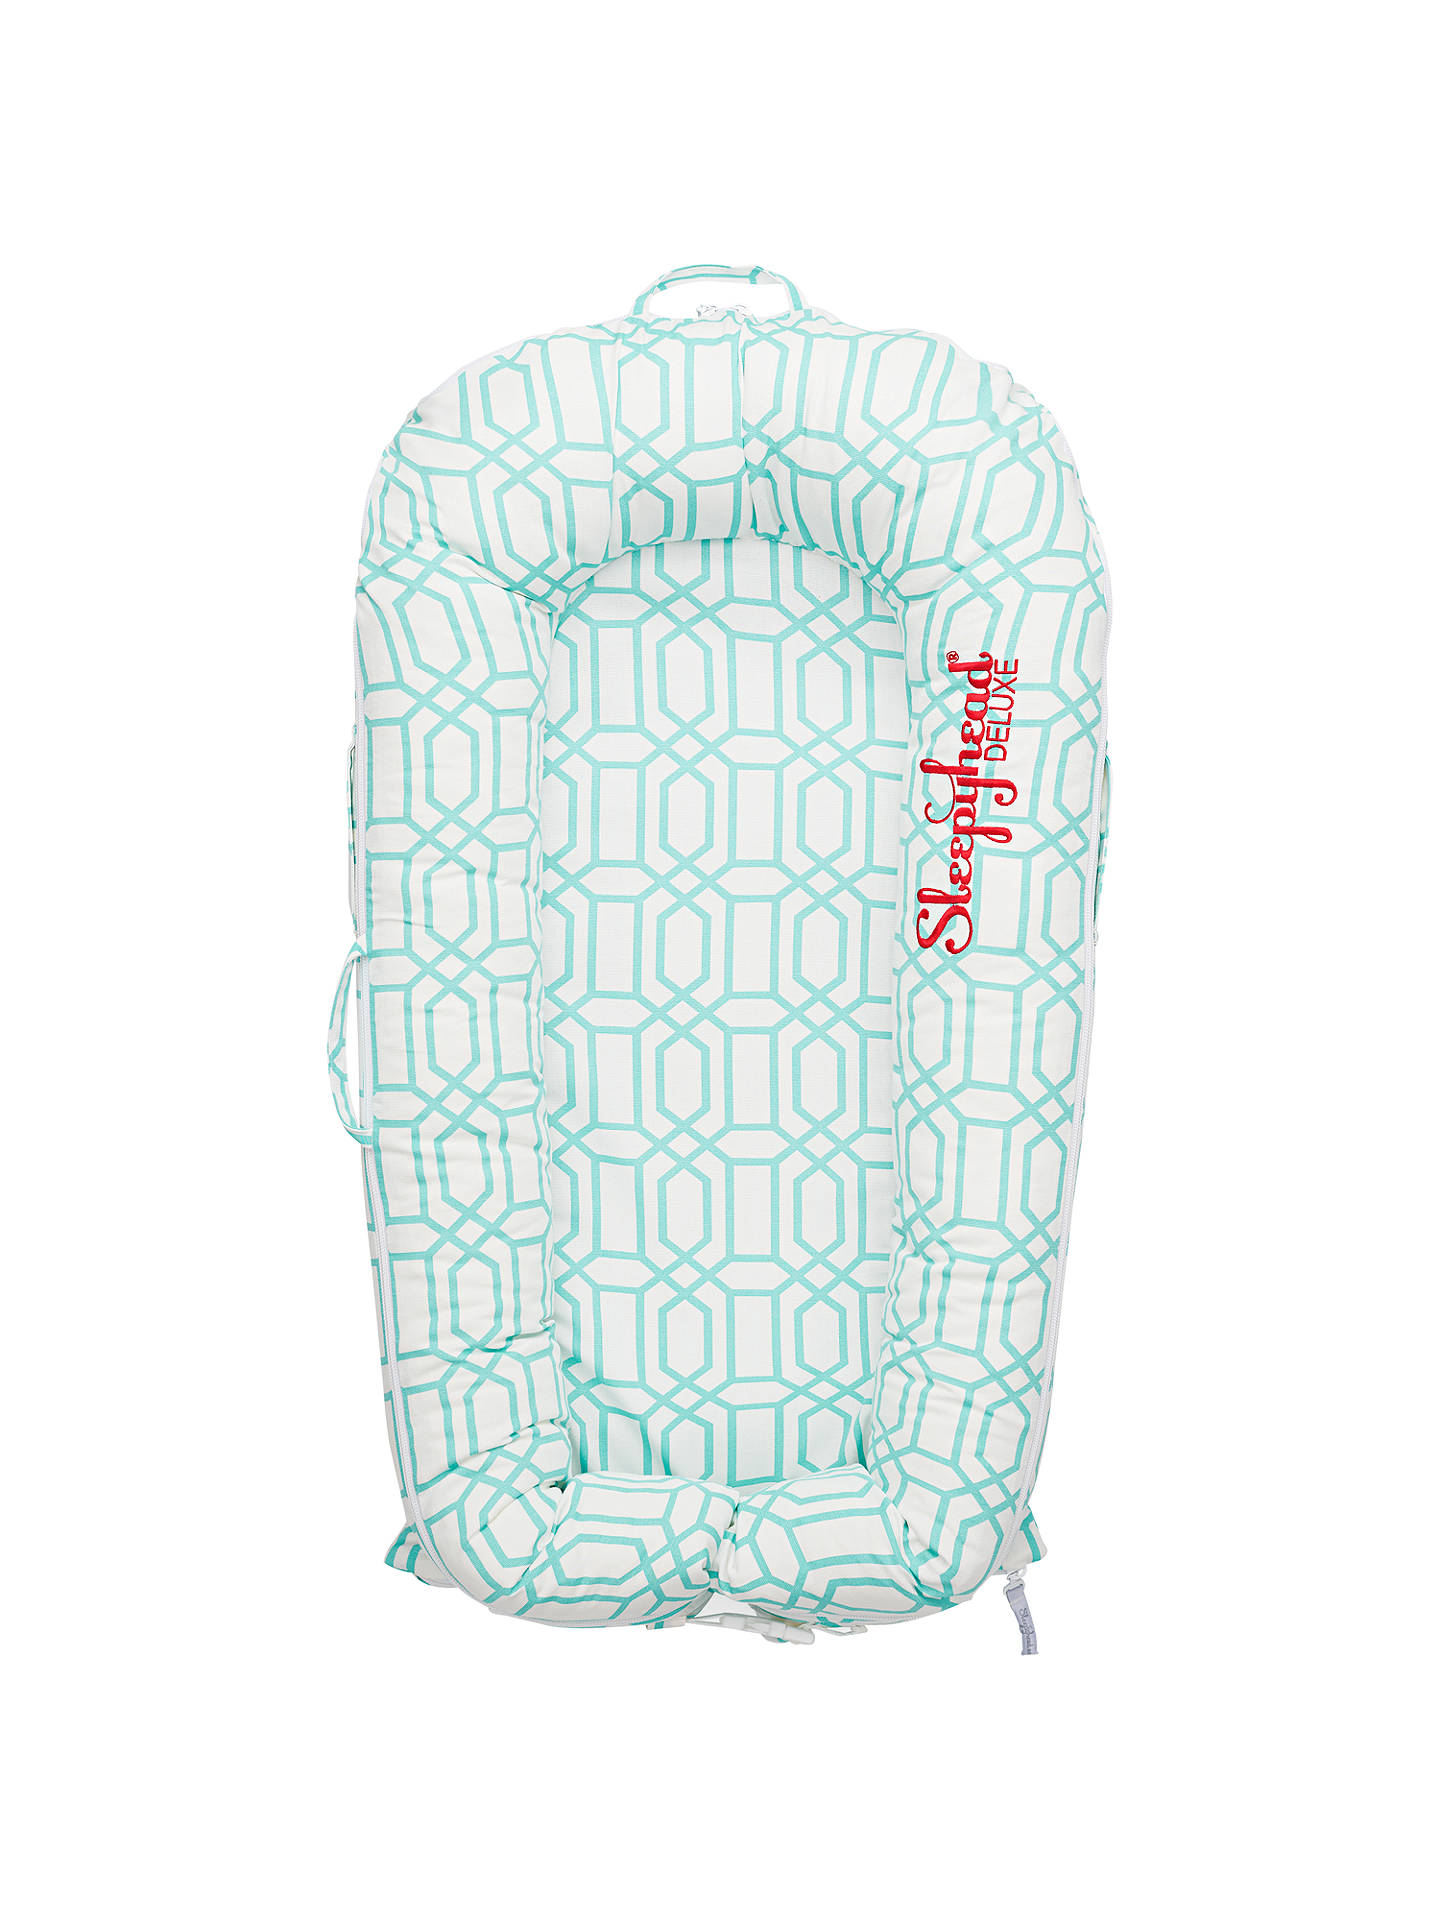 Buy Sleepyhead Deluxe+ Minty Trellis Baby Pod Cover, 0-3 months Online at johnlewis.com